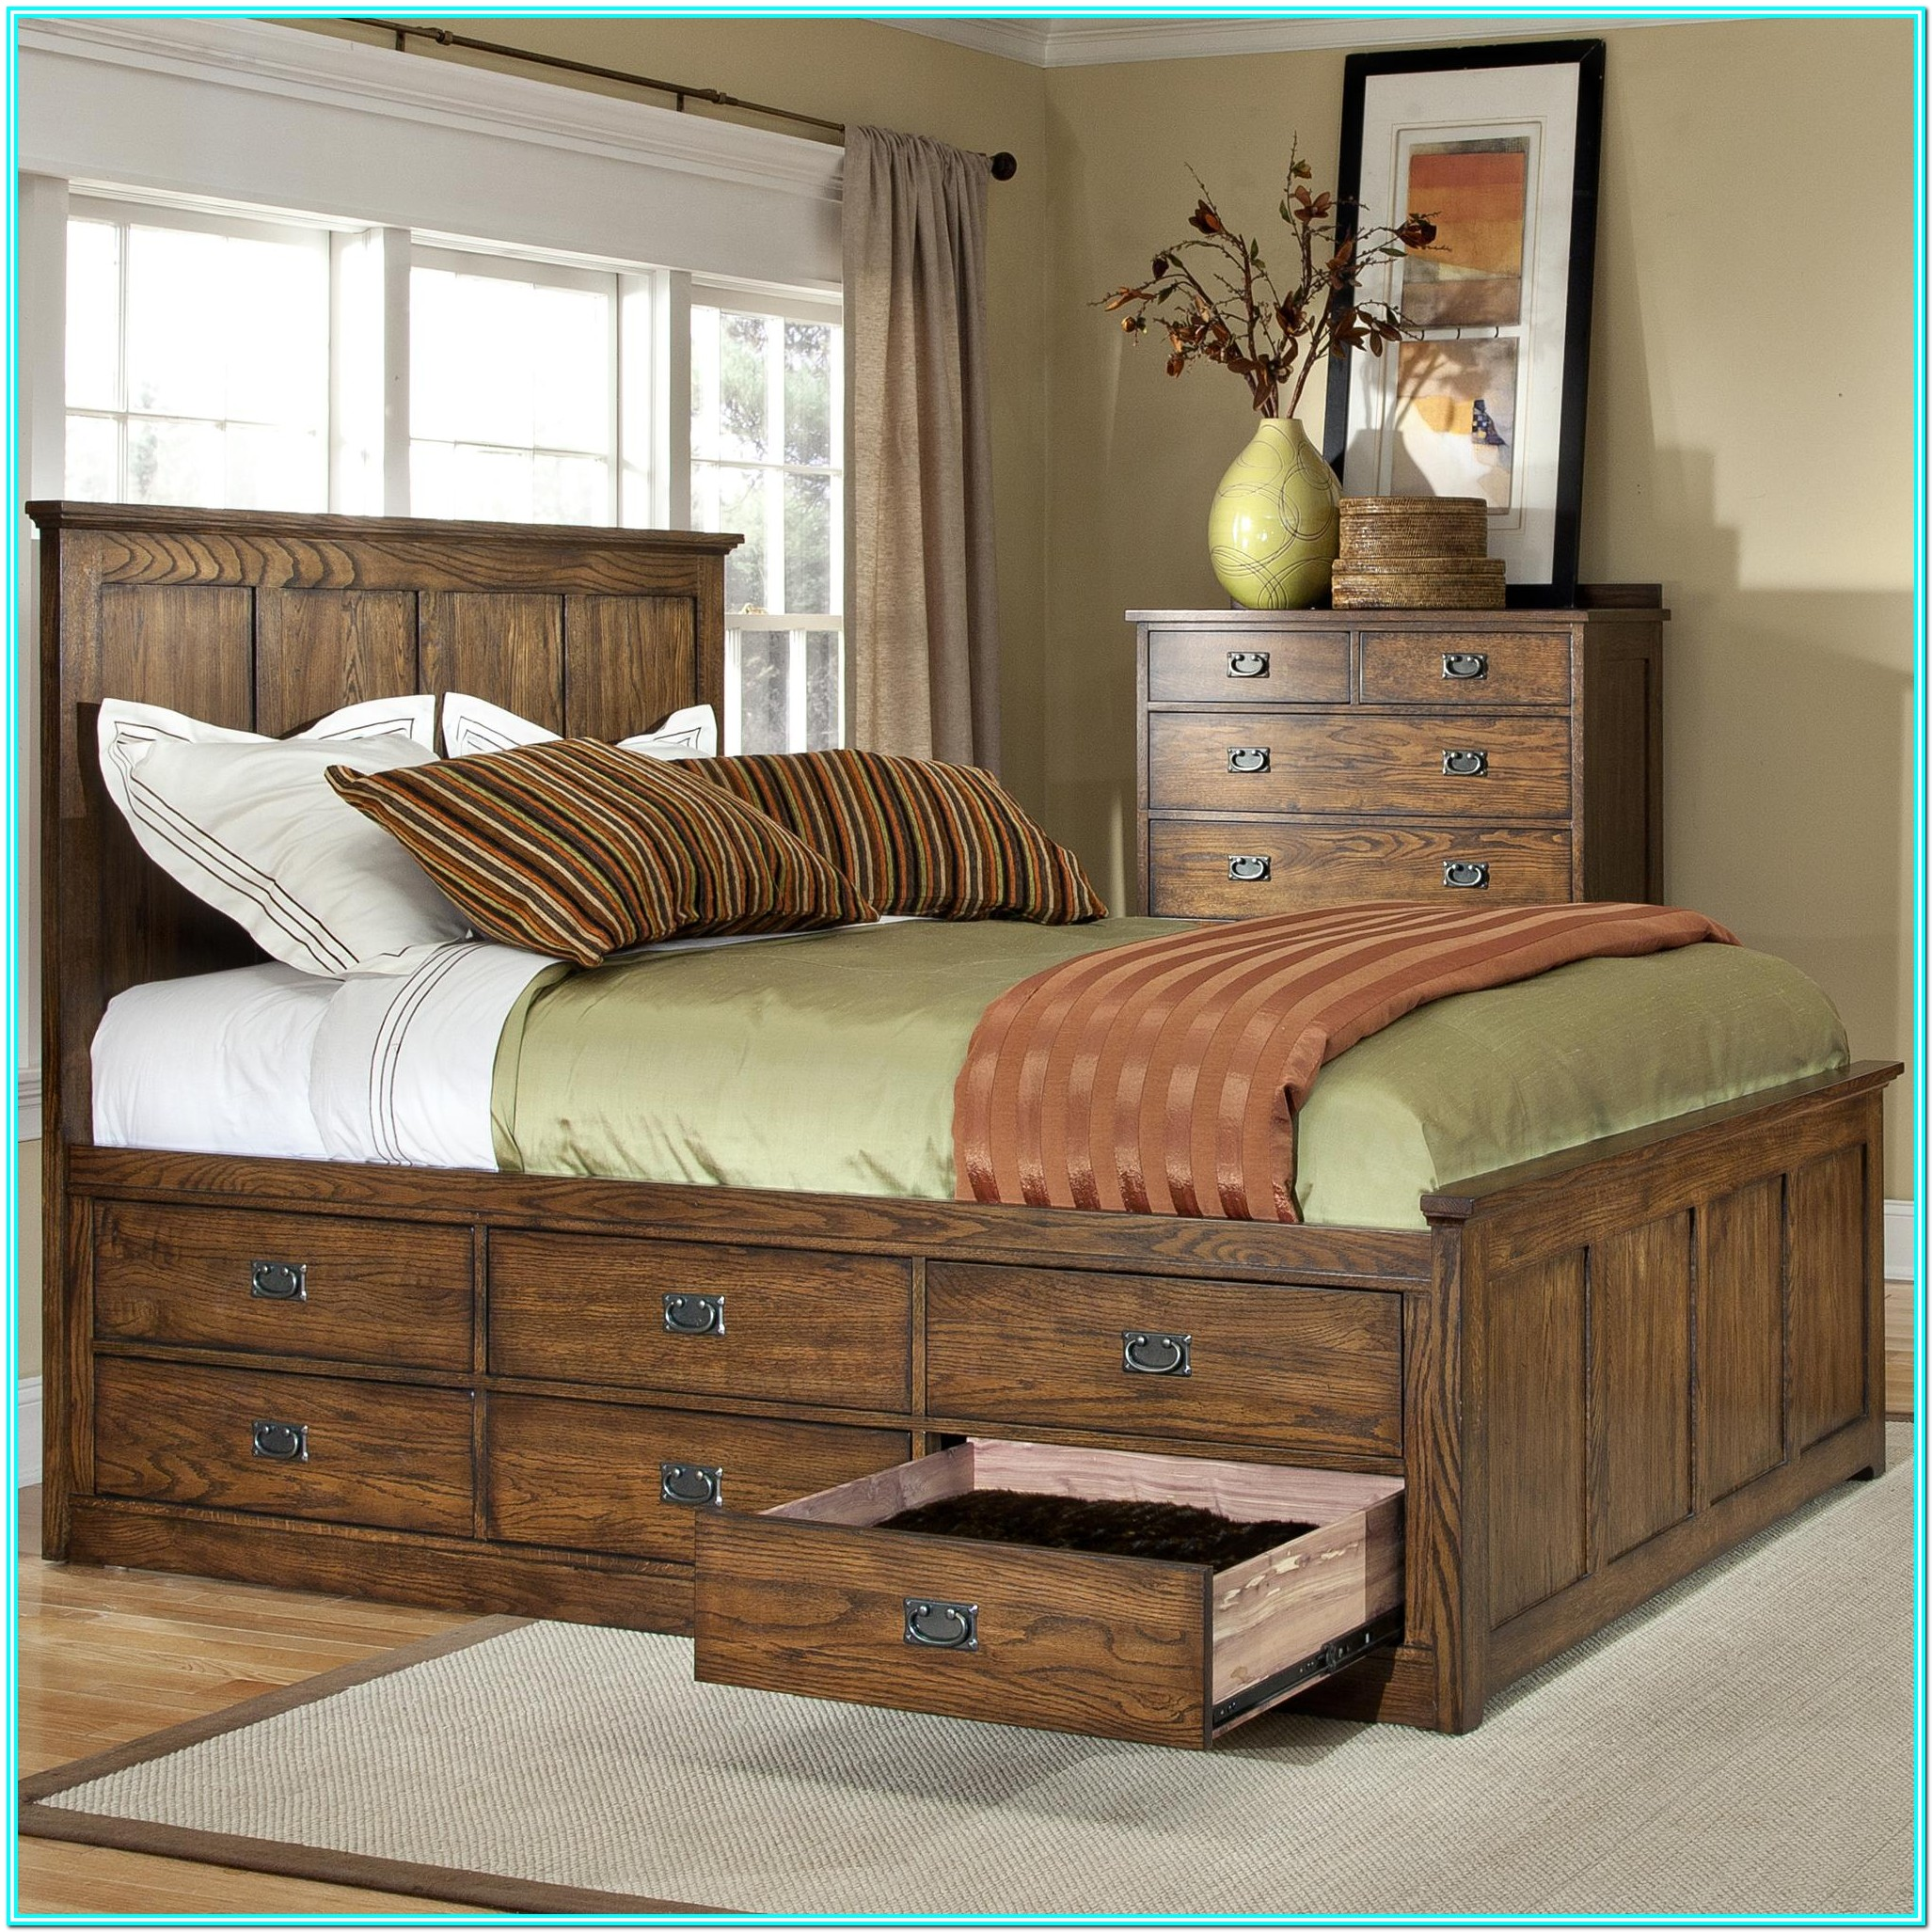 King Platform Bed With Drawers And Headboard